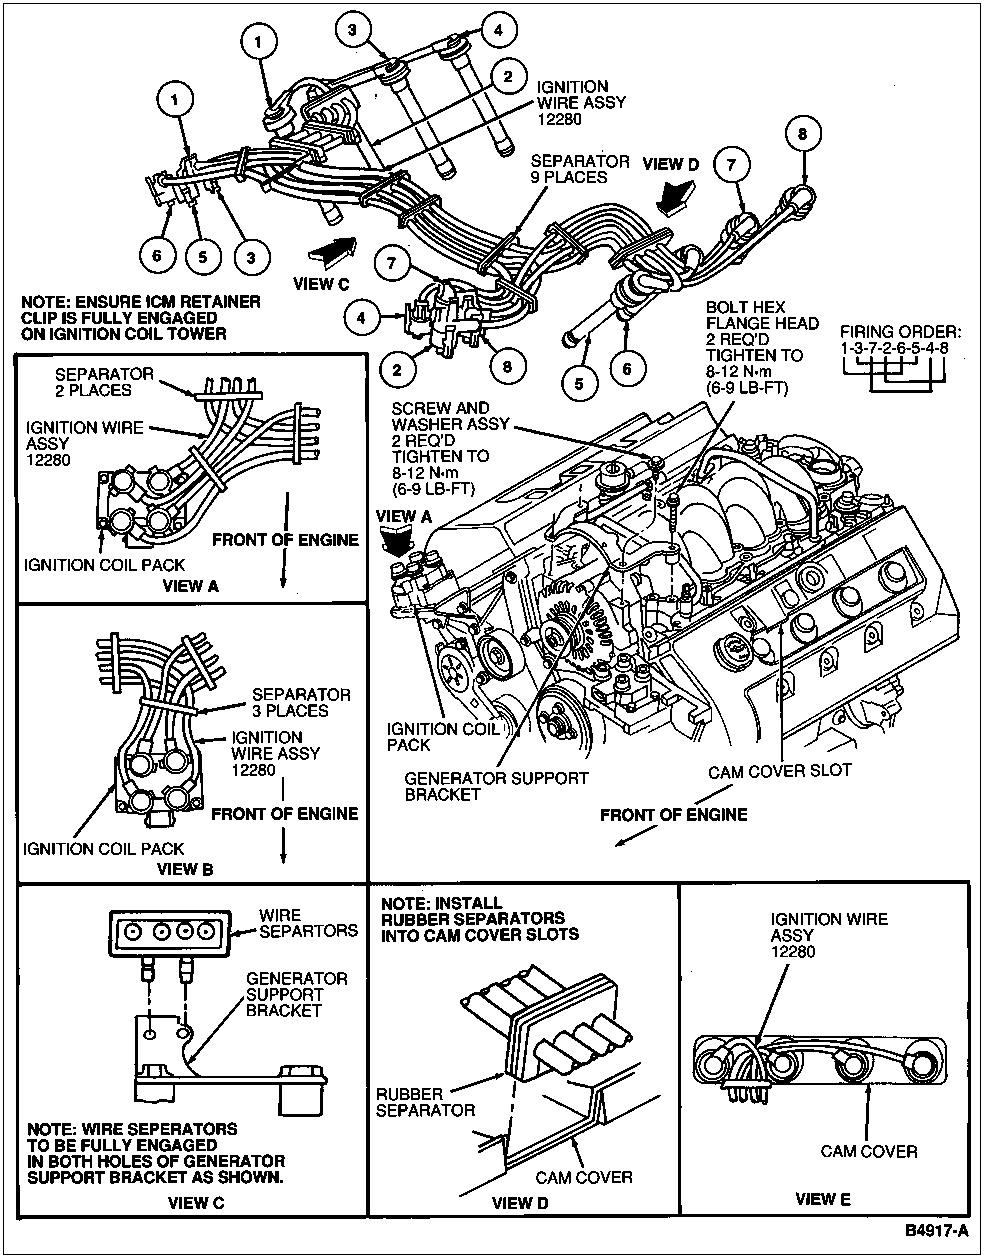 94 Lincoln Mark viii need help please Lincolns OnLine Message Forum – Lincoln 98 Mark 8 Fuse Diagram